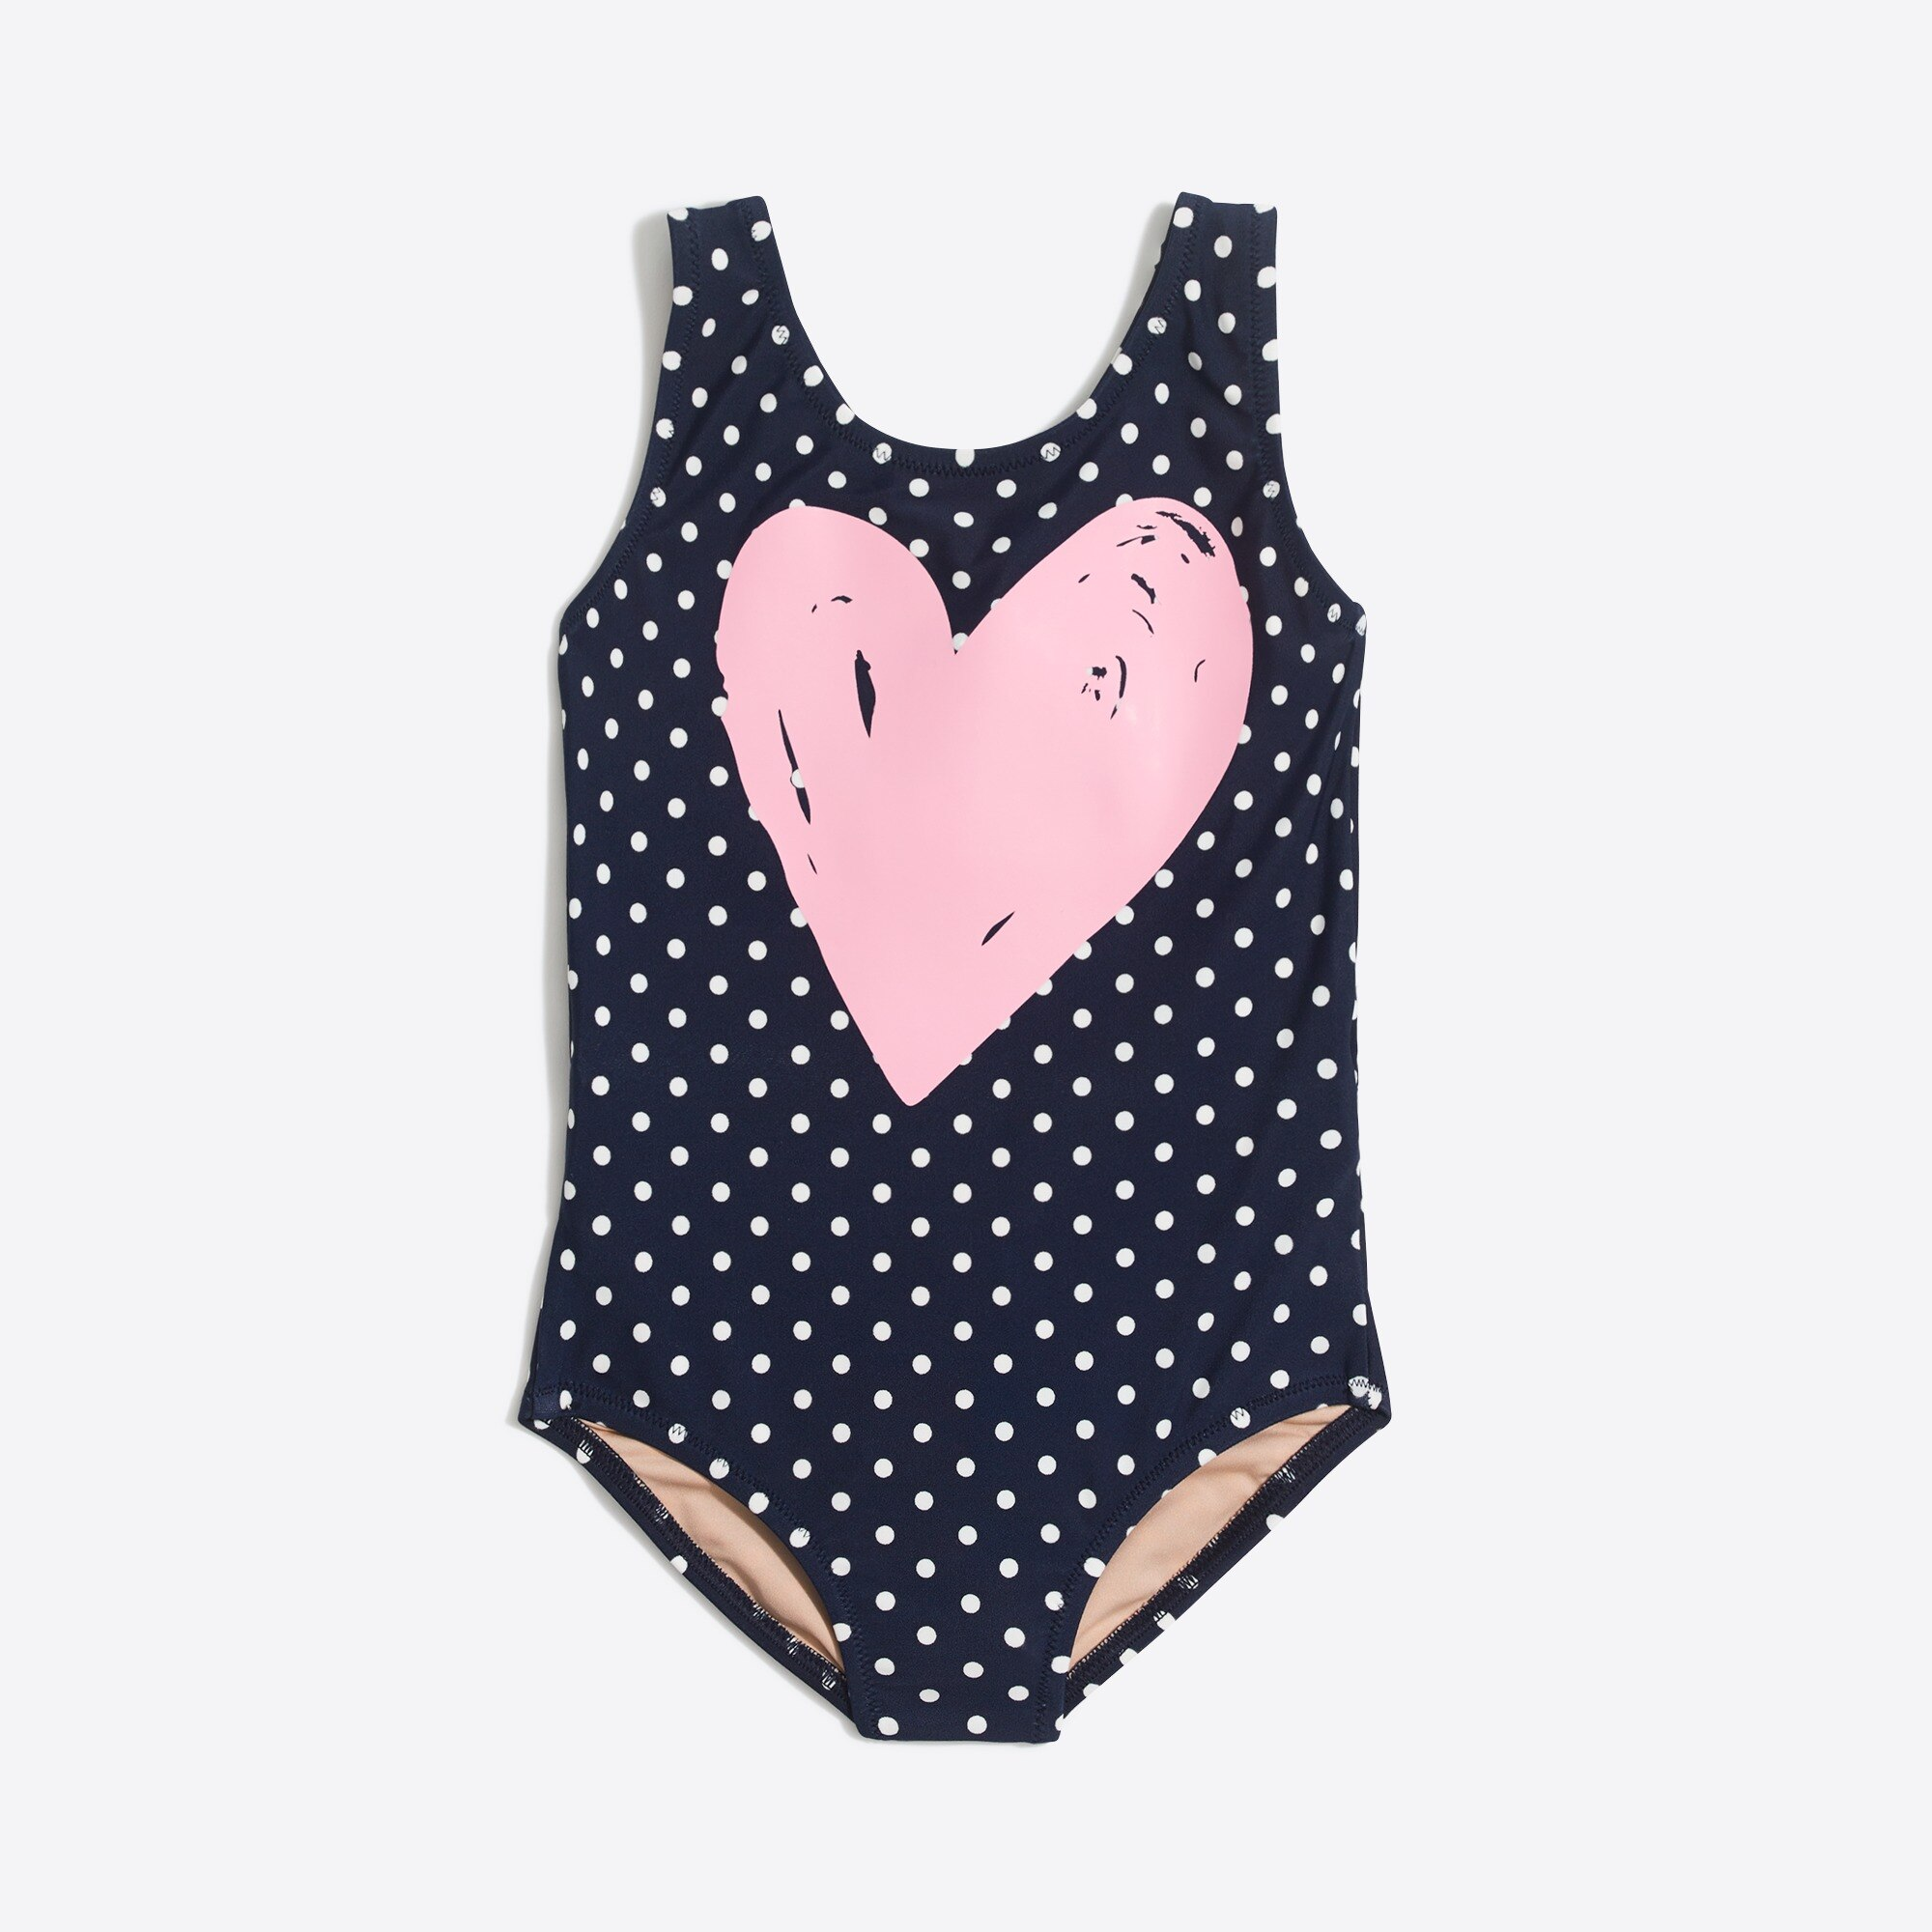 Image 1 for Girls'  pin dot one-piece with heart